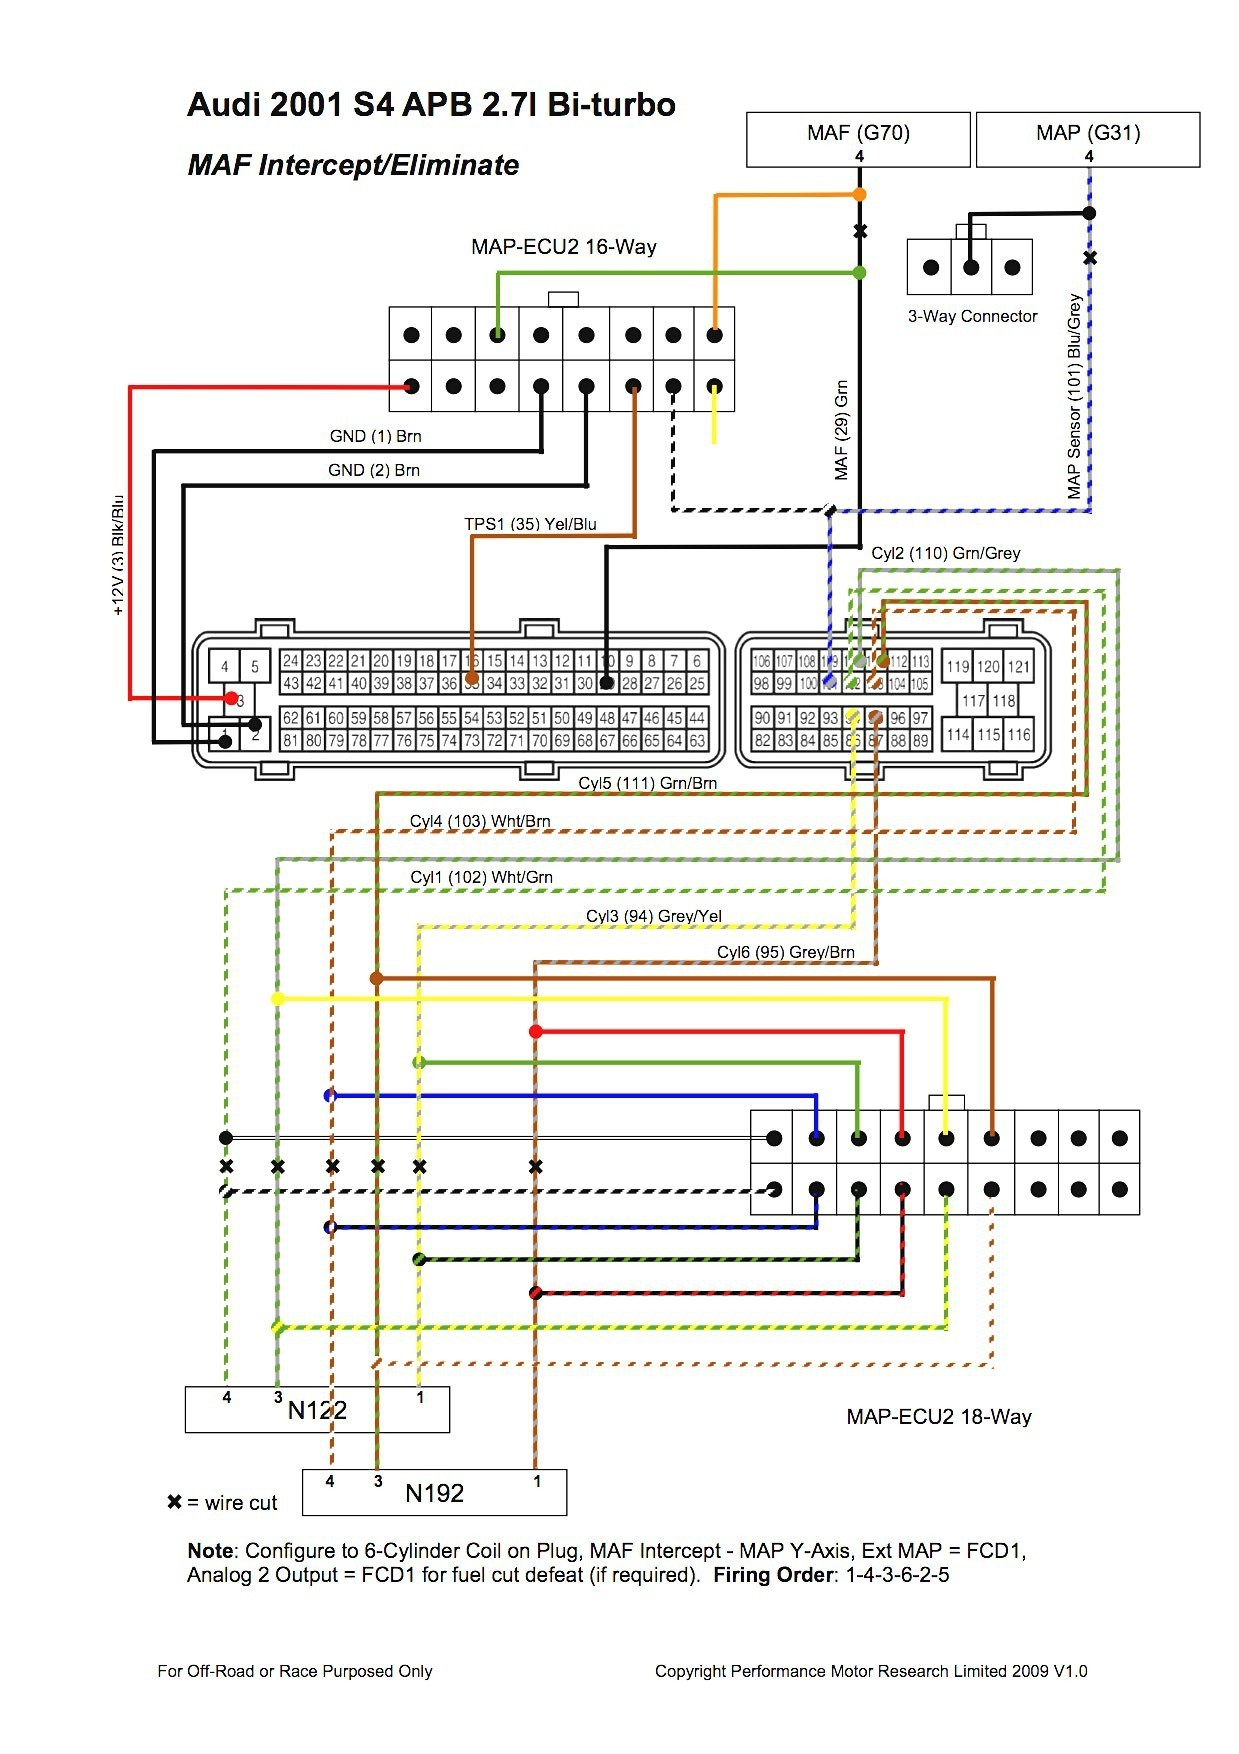 Pioneer parking brake bypass wiring diagram unique wiring diagram pioneer parking brake bypass wiring diagram fresh wiring diagram pioneer sph wiring diagram amazing for new asfbconference2016 Images